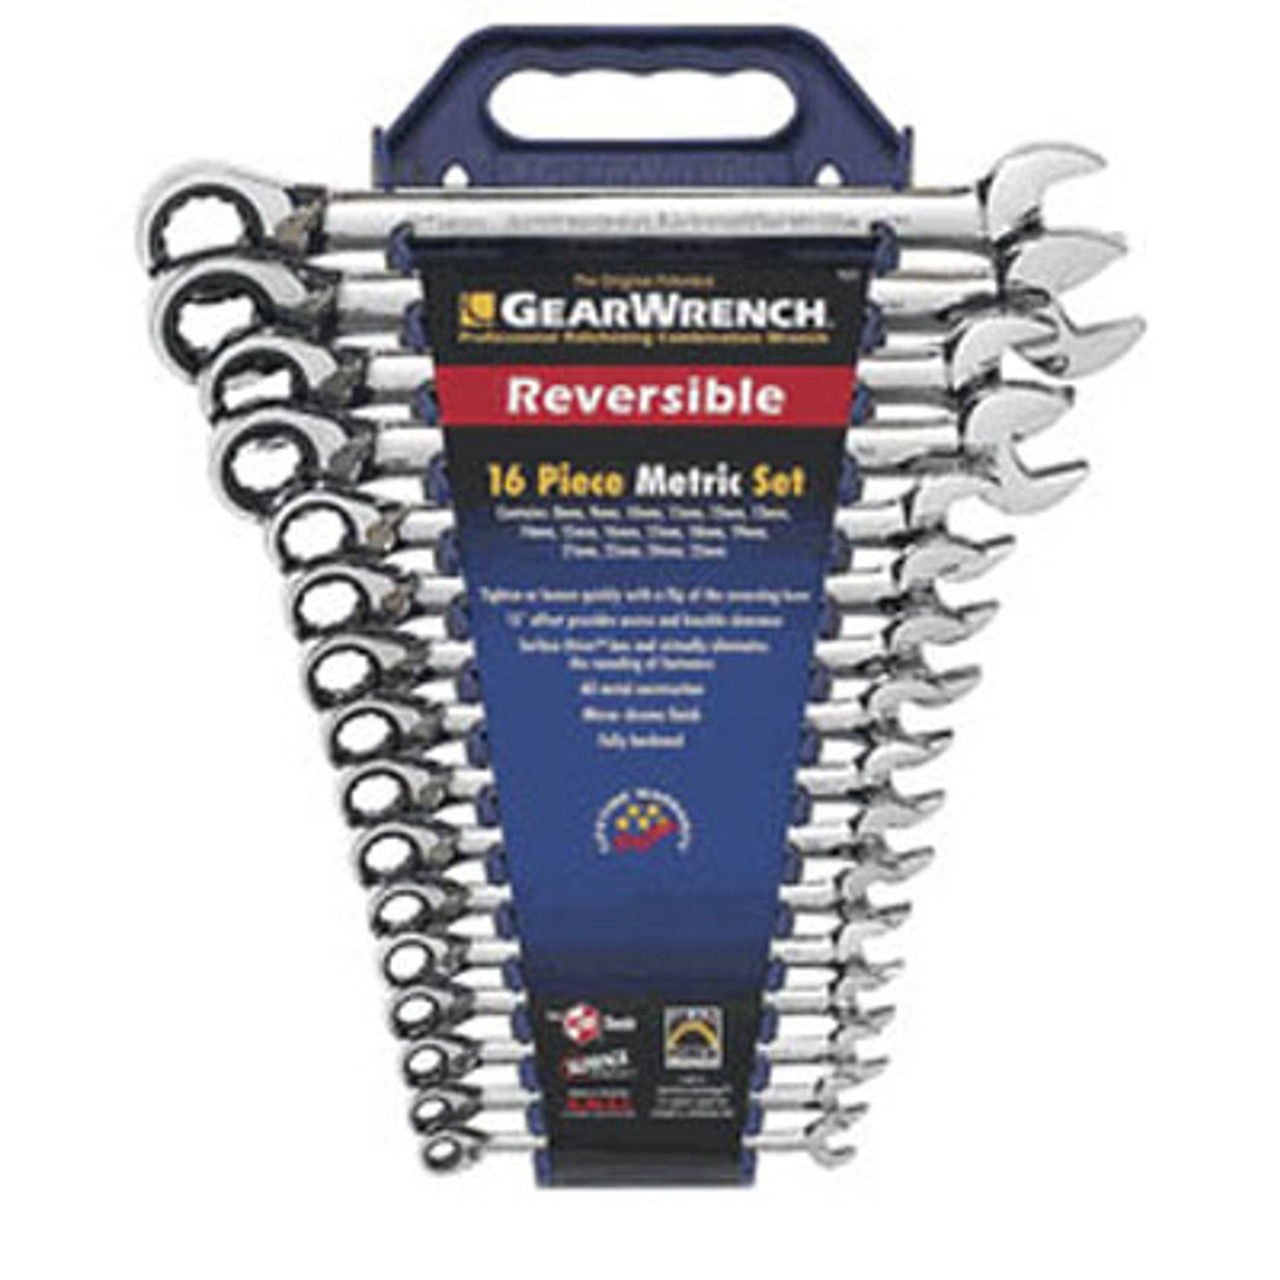 GEARWRENCH 9621 21mm Reversible Combination Ratcheting Wrench 9621N